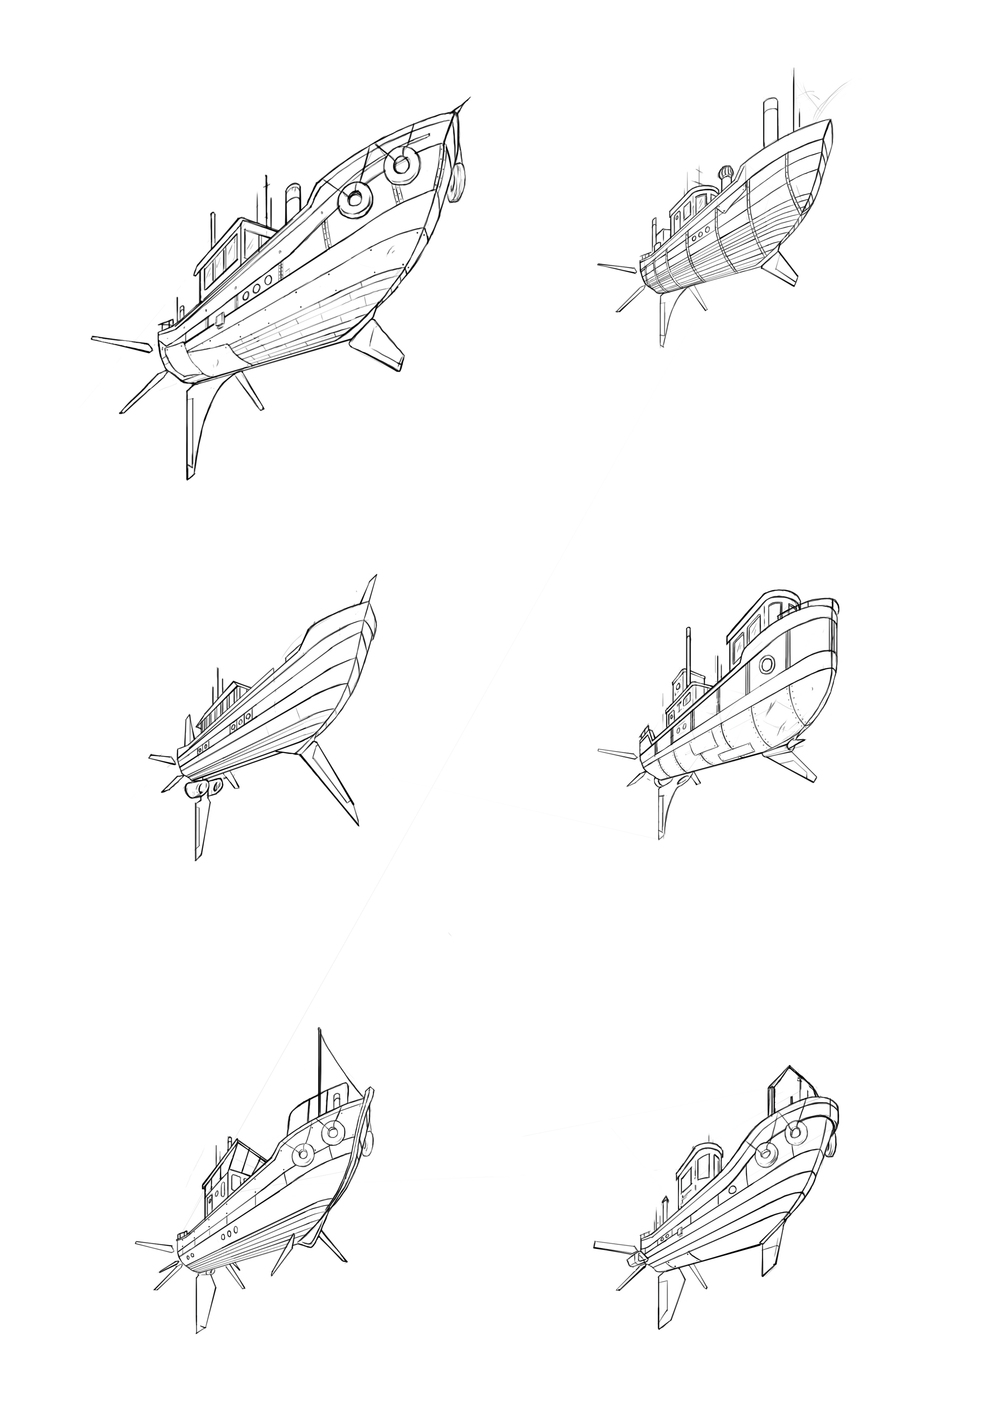 fishingboatvariations.jpg